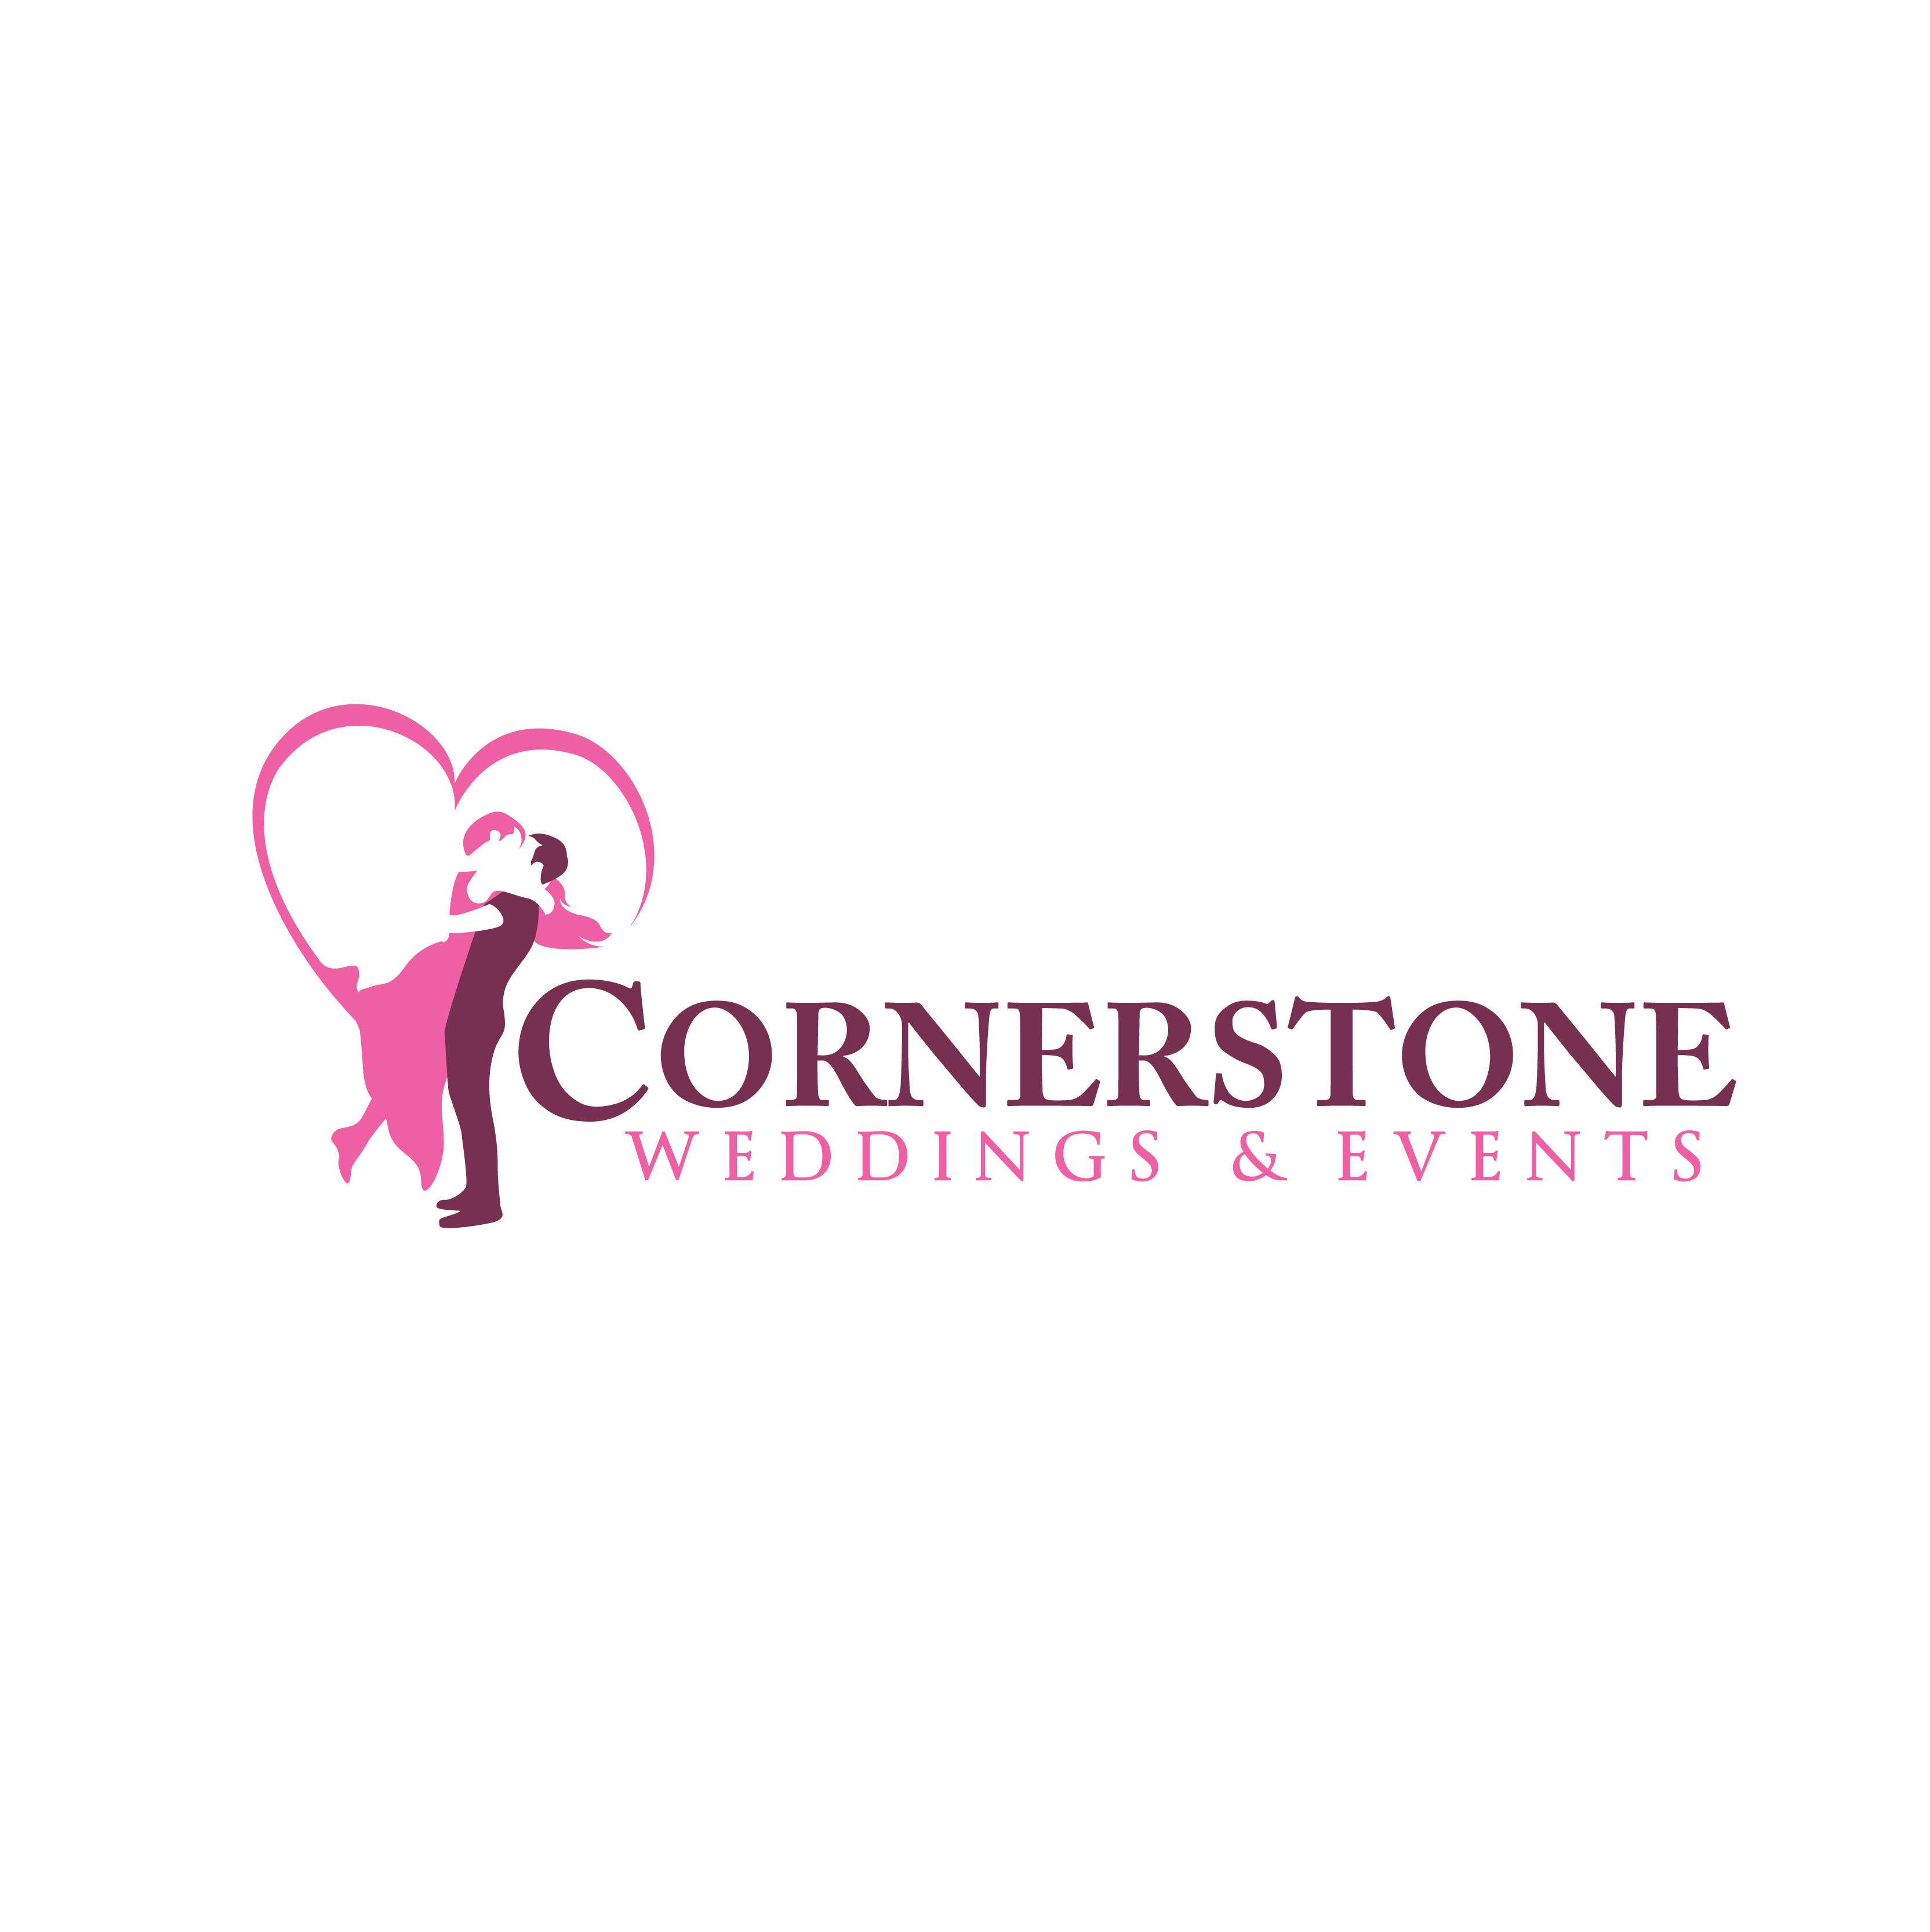 Logo Design by stormbighit - Entry No. 13 in the Logo Design Contest New Logo Design for Cornerstone Weddings & Events.